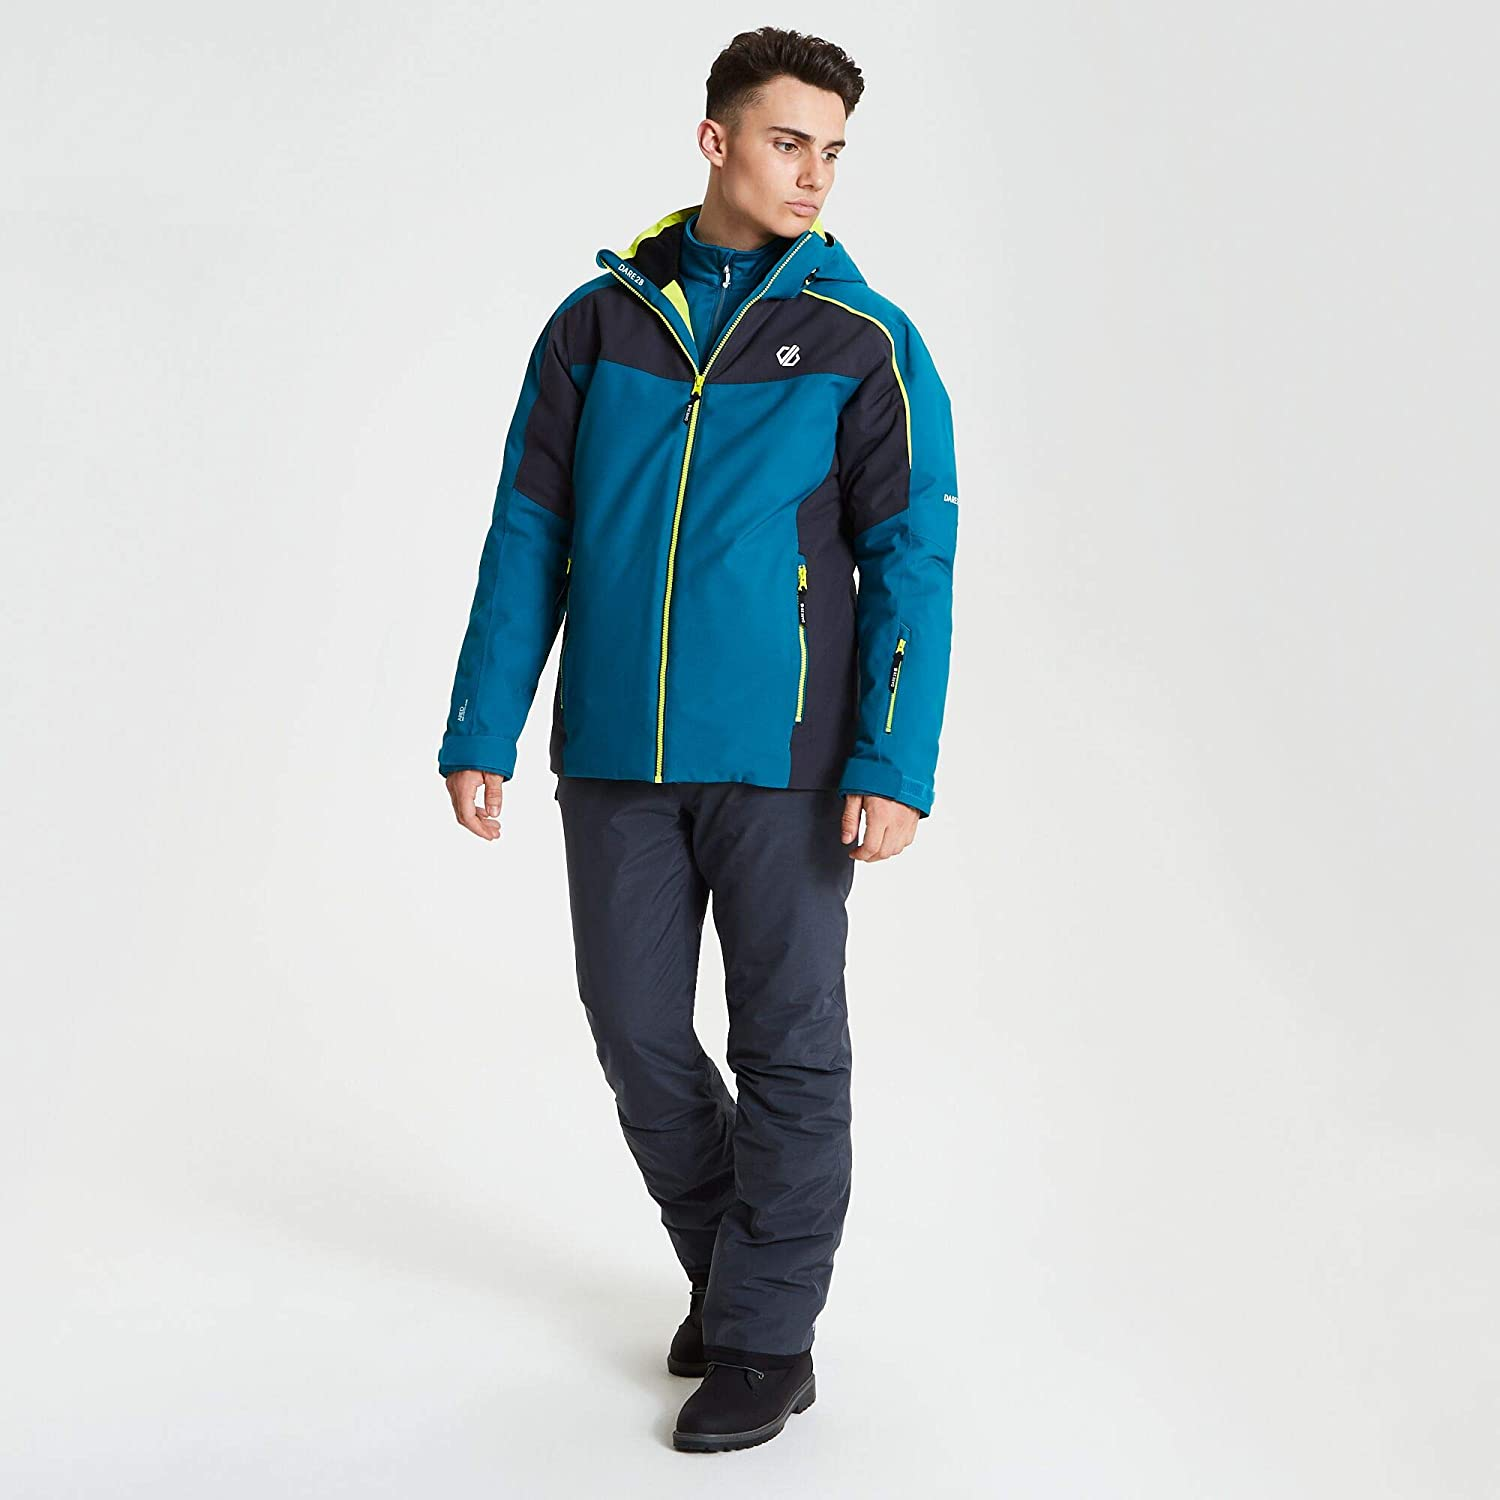 Dare 2B Motto Pant Waterproof /& Breathable High Loft Insulated Ski /& Snowboard Salopette Trousers with Integrated Snow Gaiters Uomo